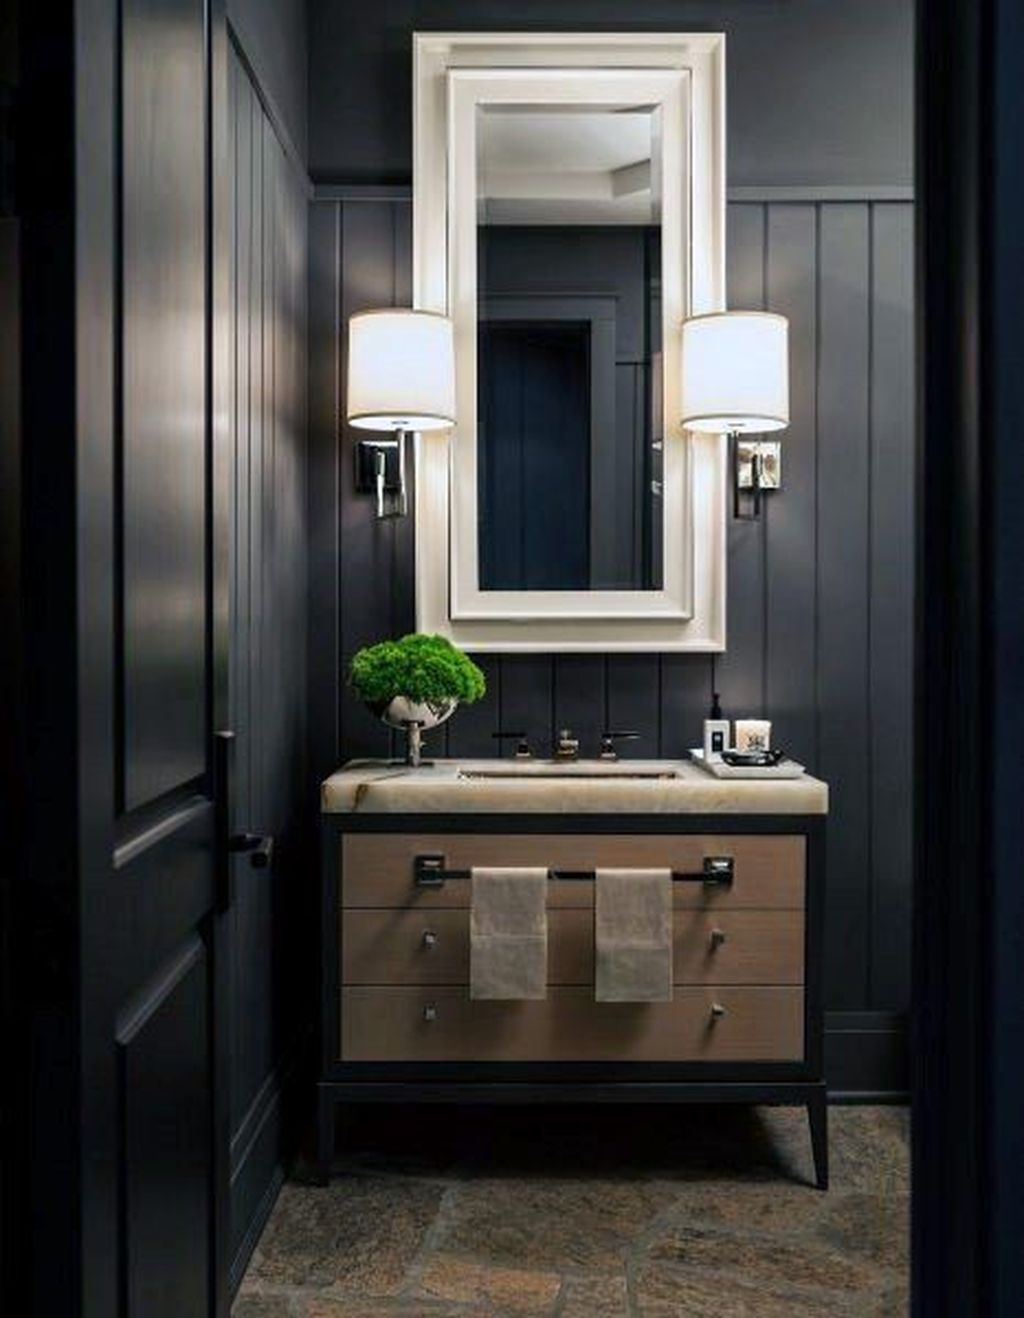 Inspiring Black Powder Room Design Ideas With Modern Style 17